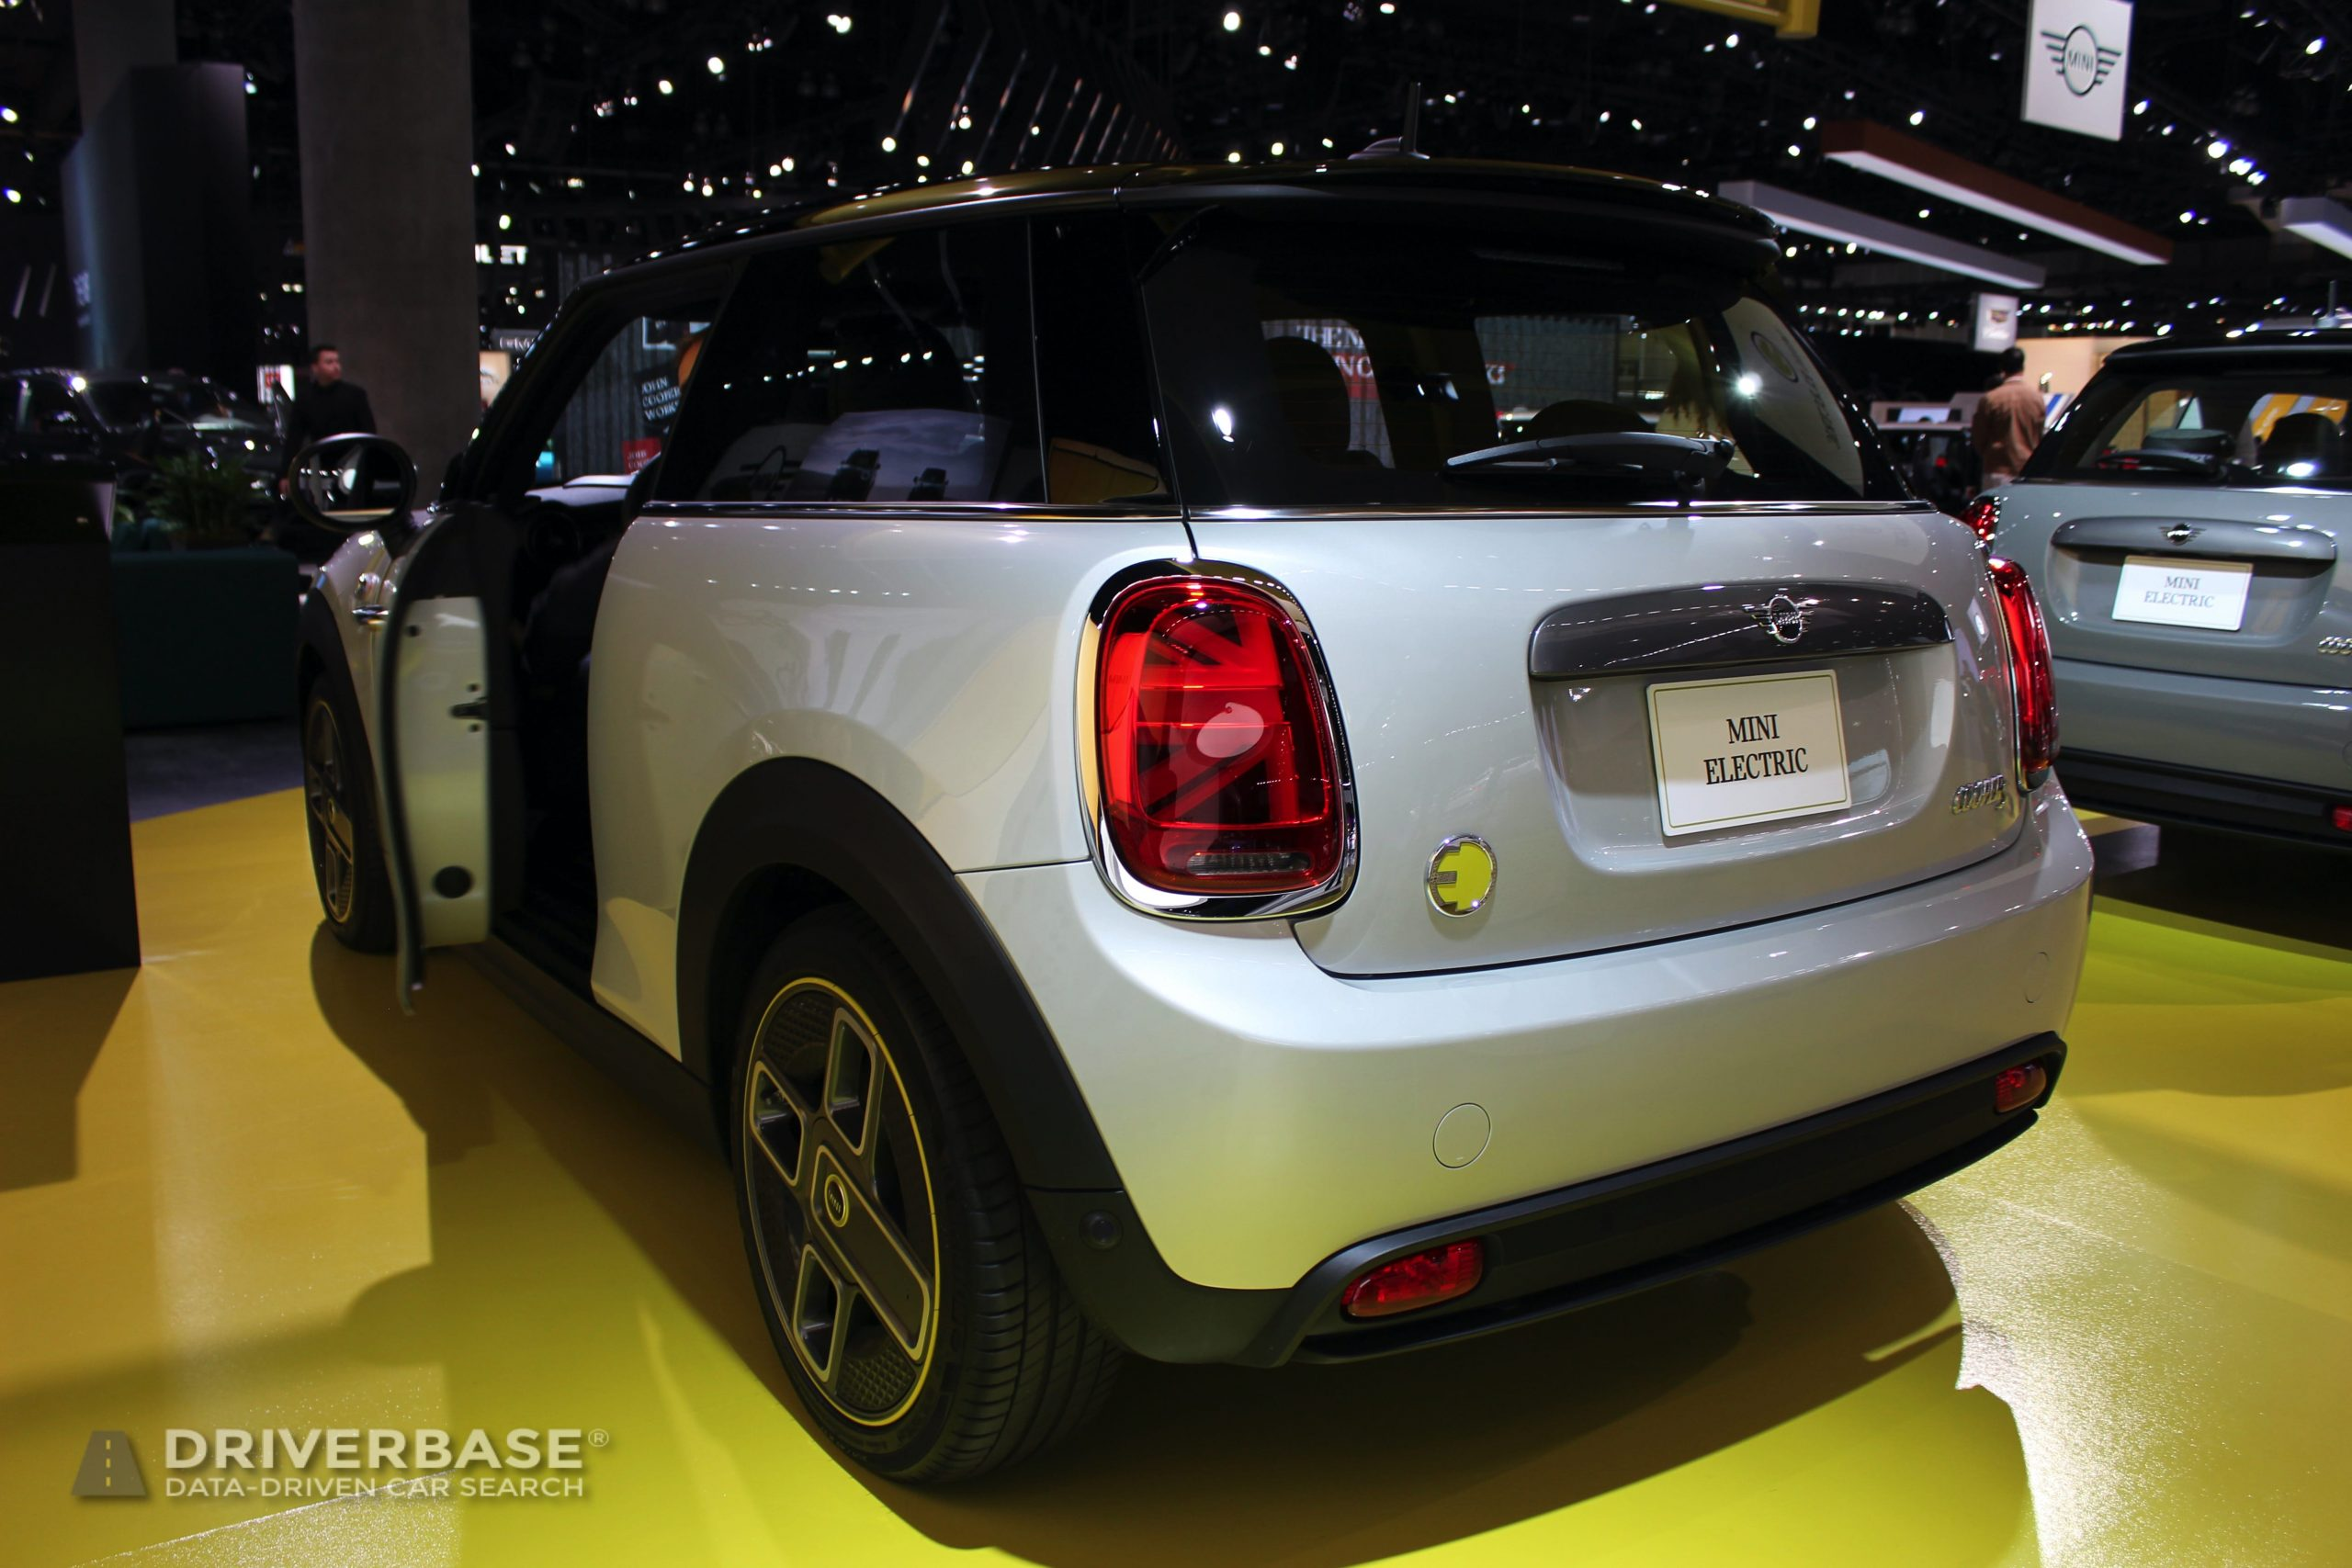 2020 MINI Cooper S Electric at the 2019 Los Angeles Auto Show